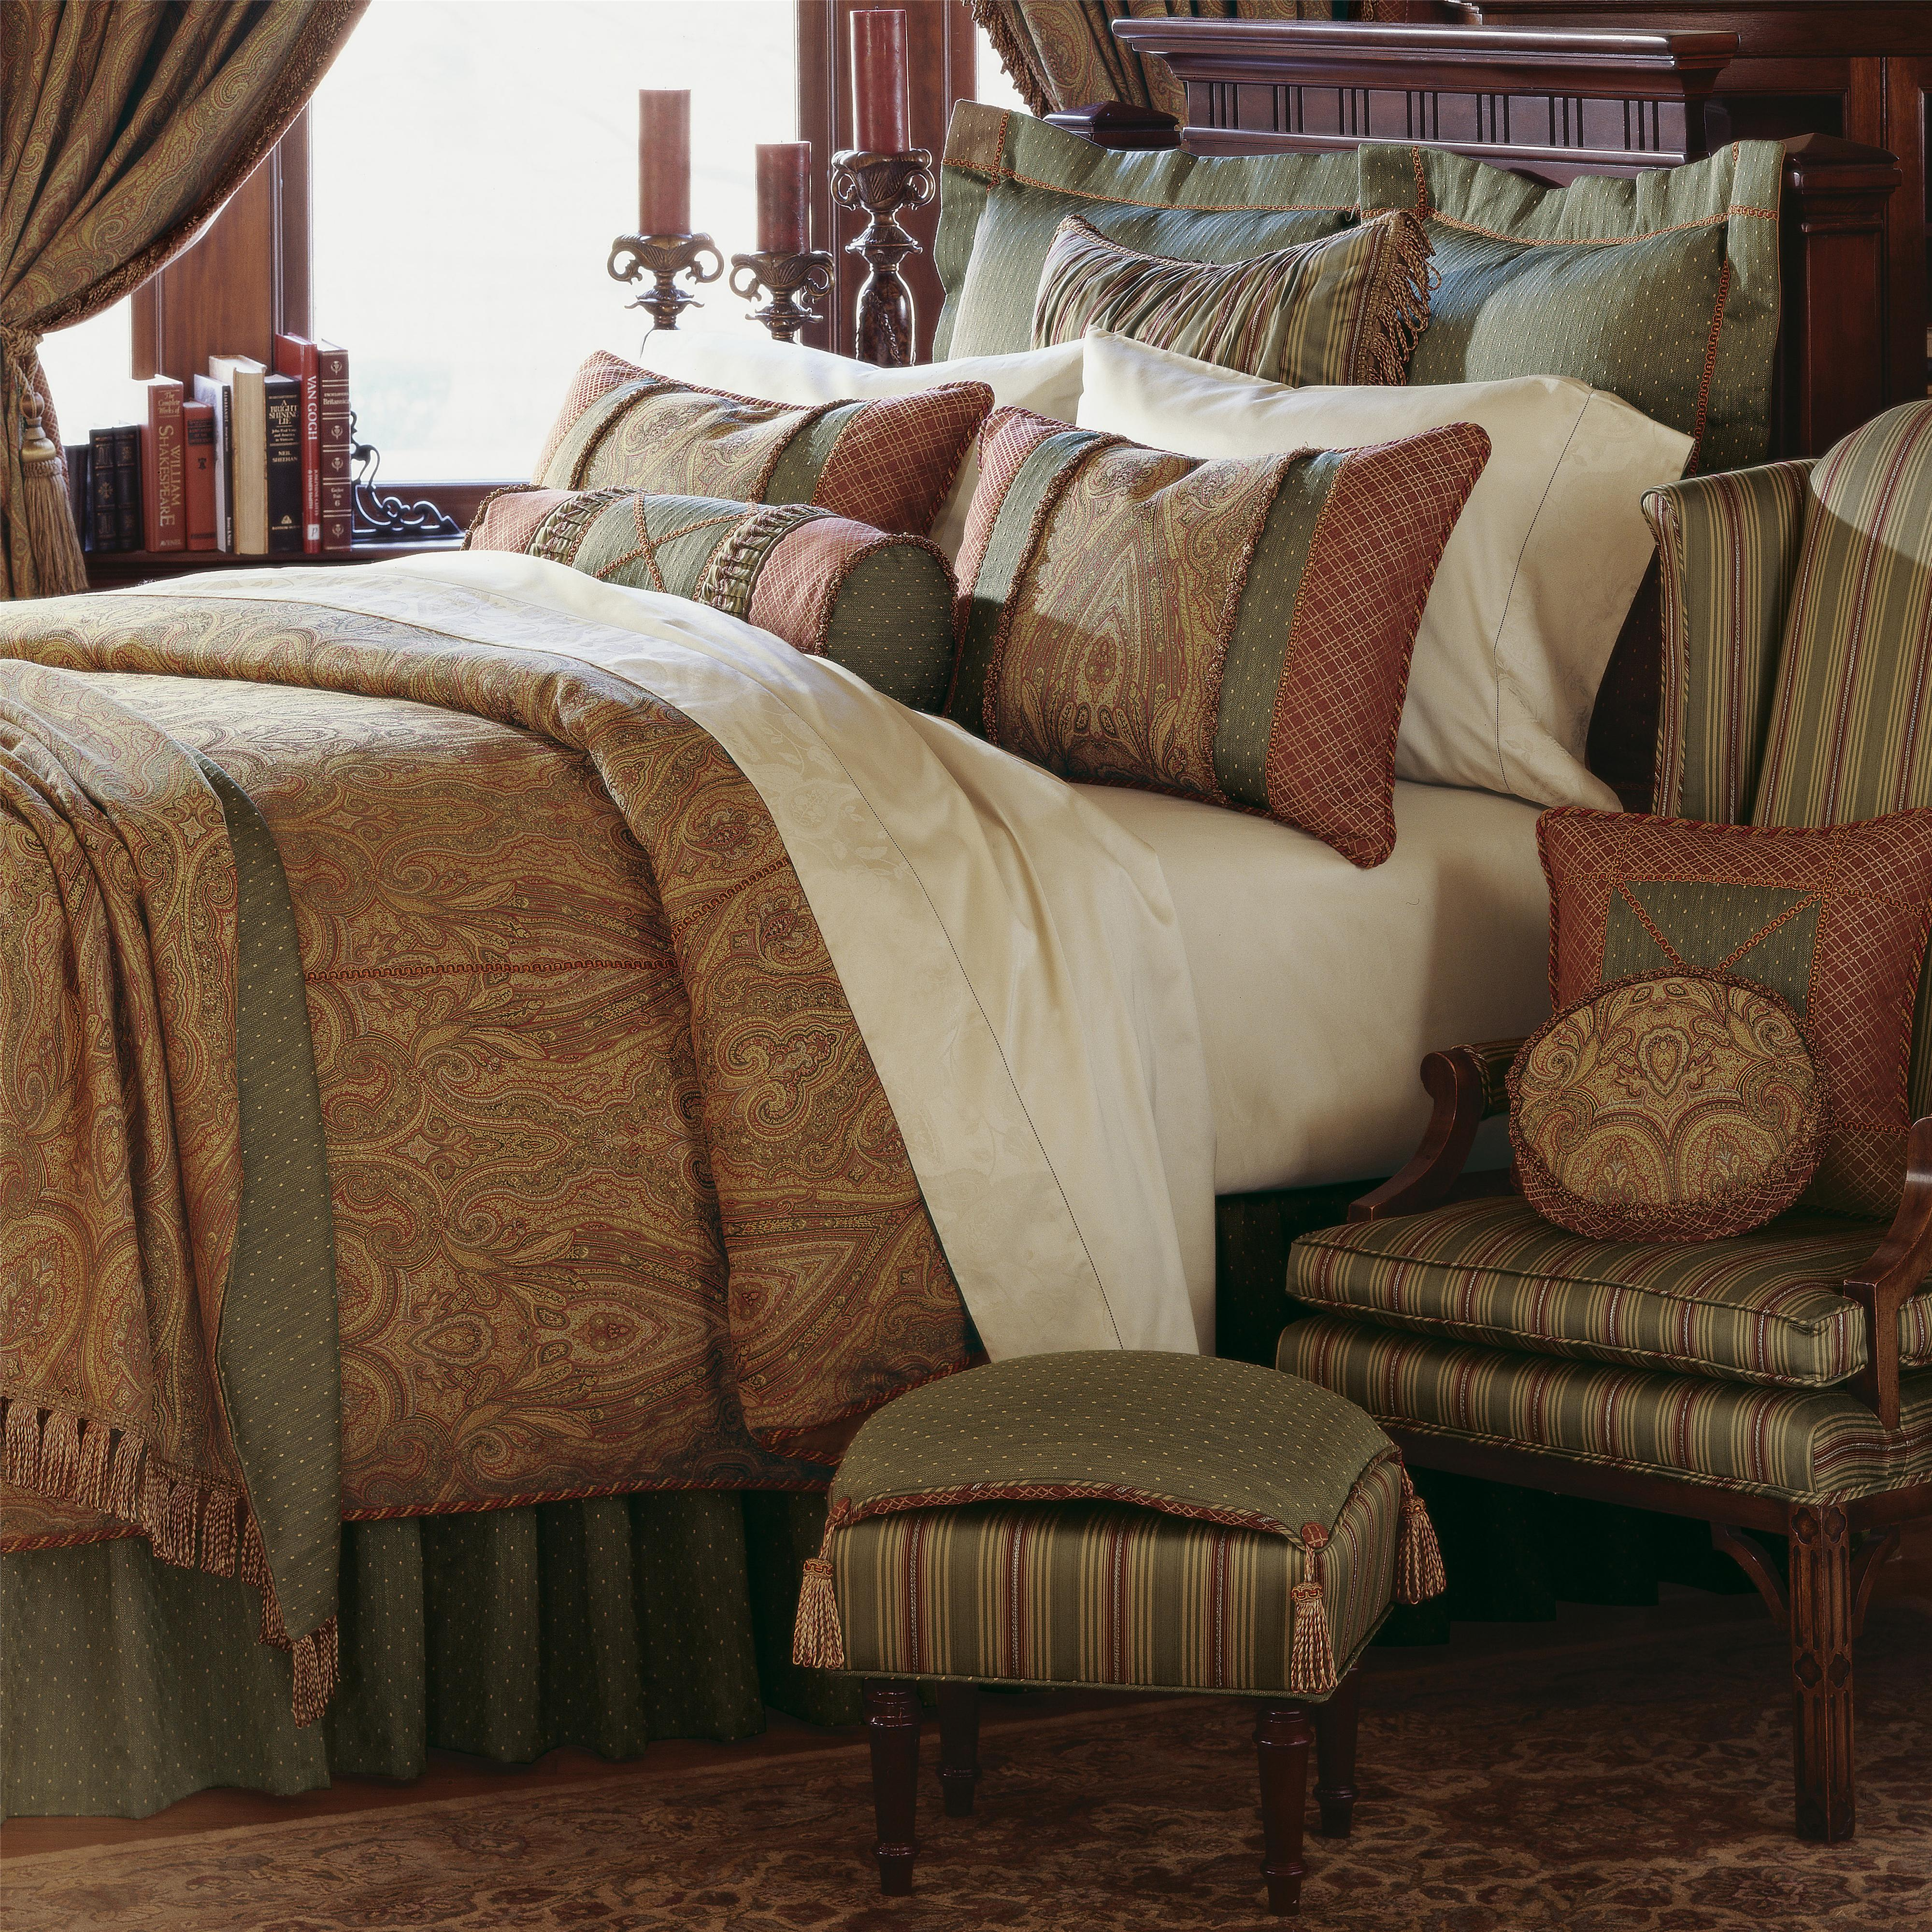 Glenwood Cal King Bedset by Eastern Accents at Alison Craig Home Furnishings